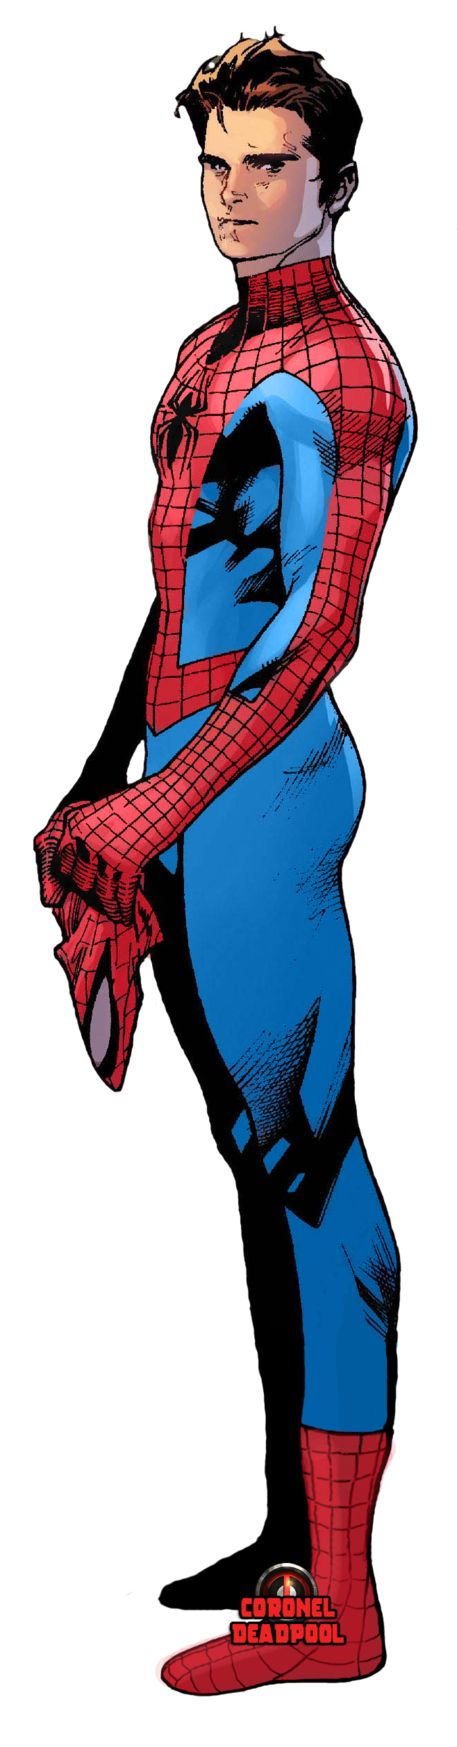 Amazing spider man cartoon peter parker - photo#18